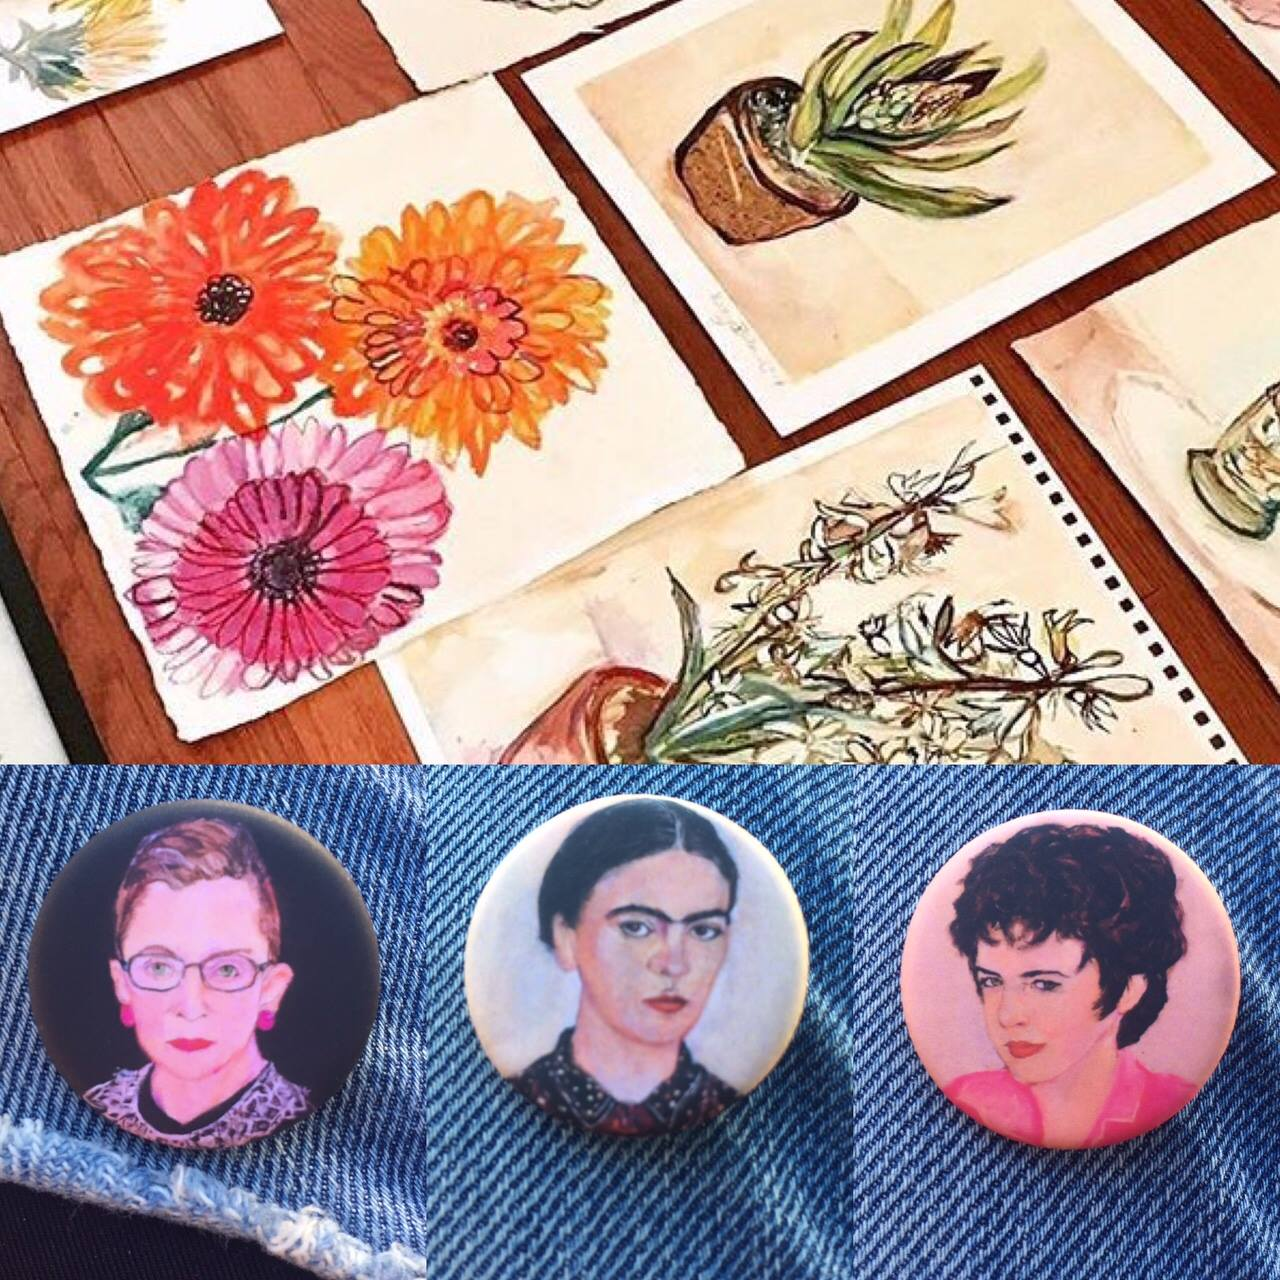 Jenny Belin's flower paintings and feminist pins.